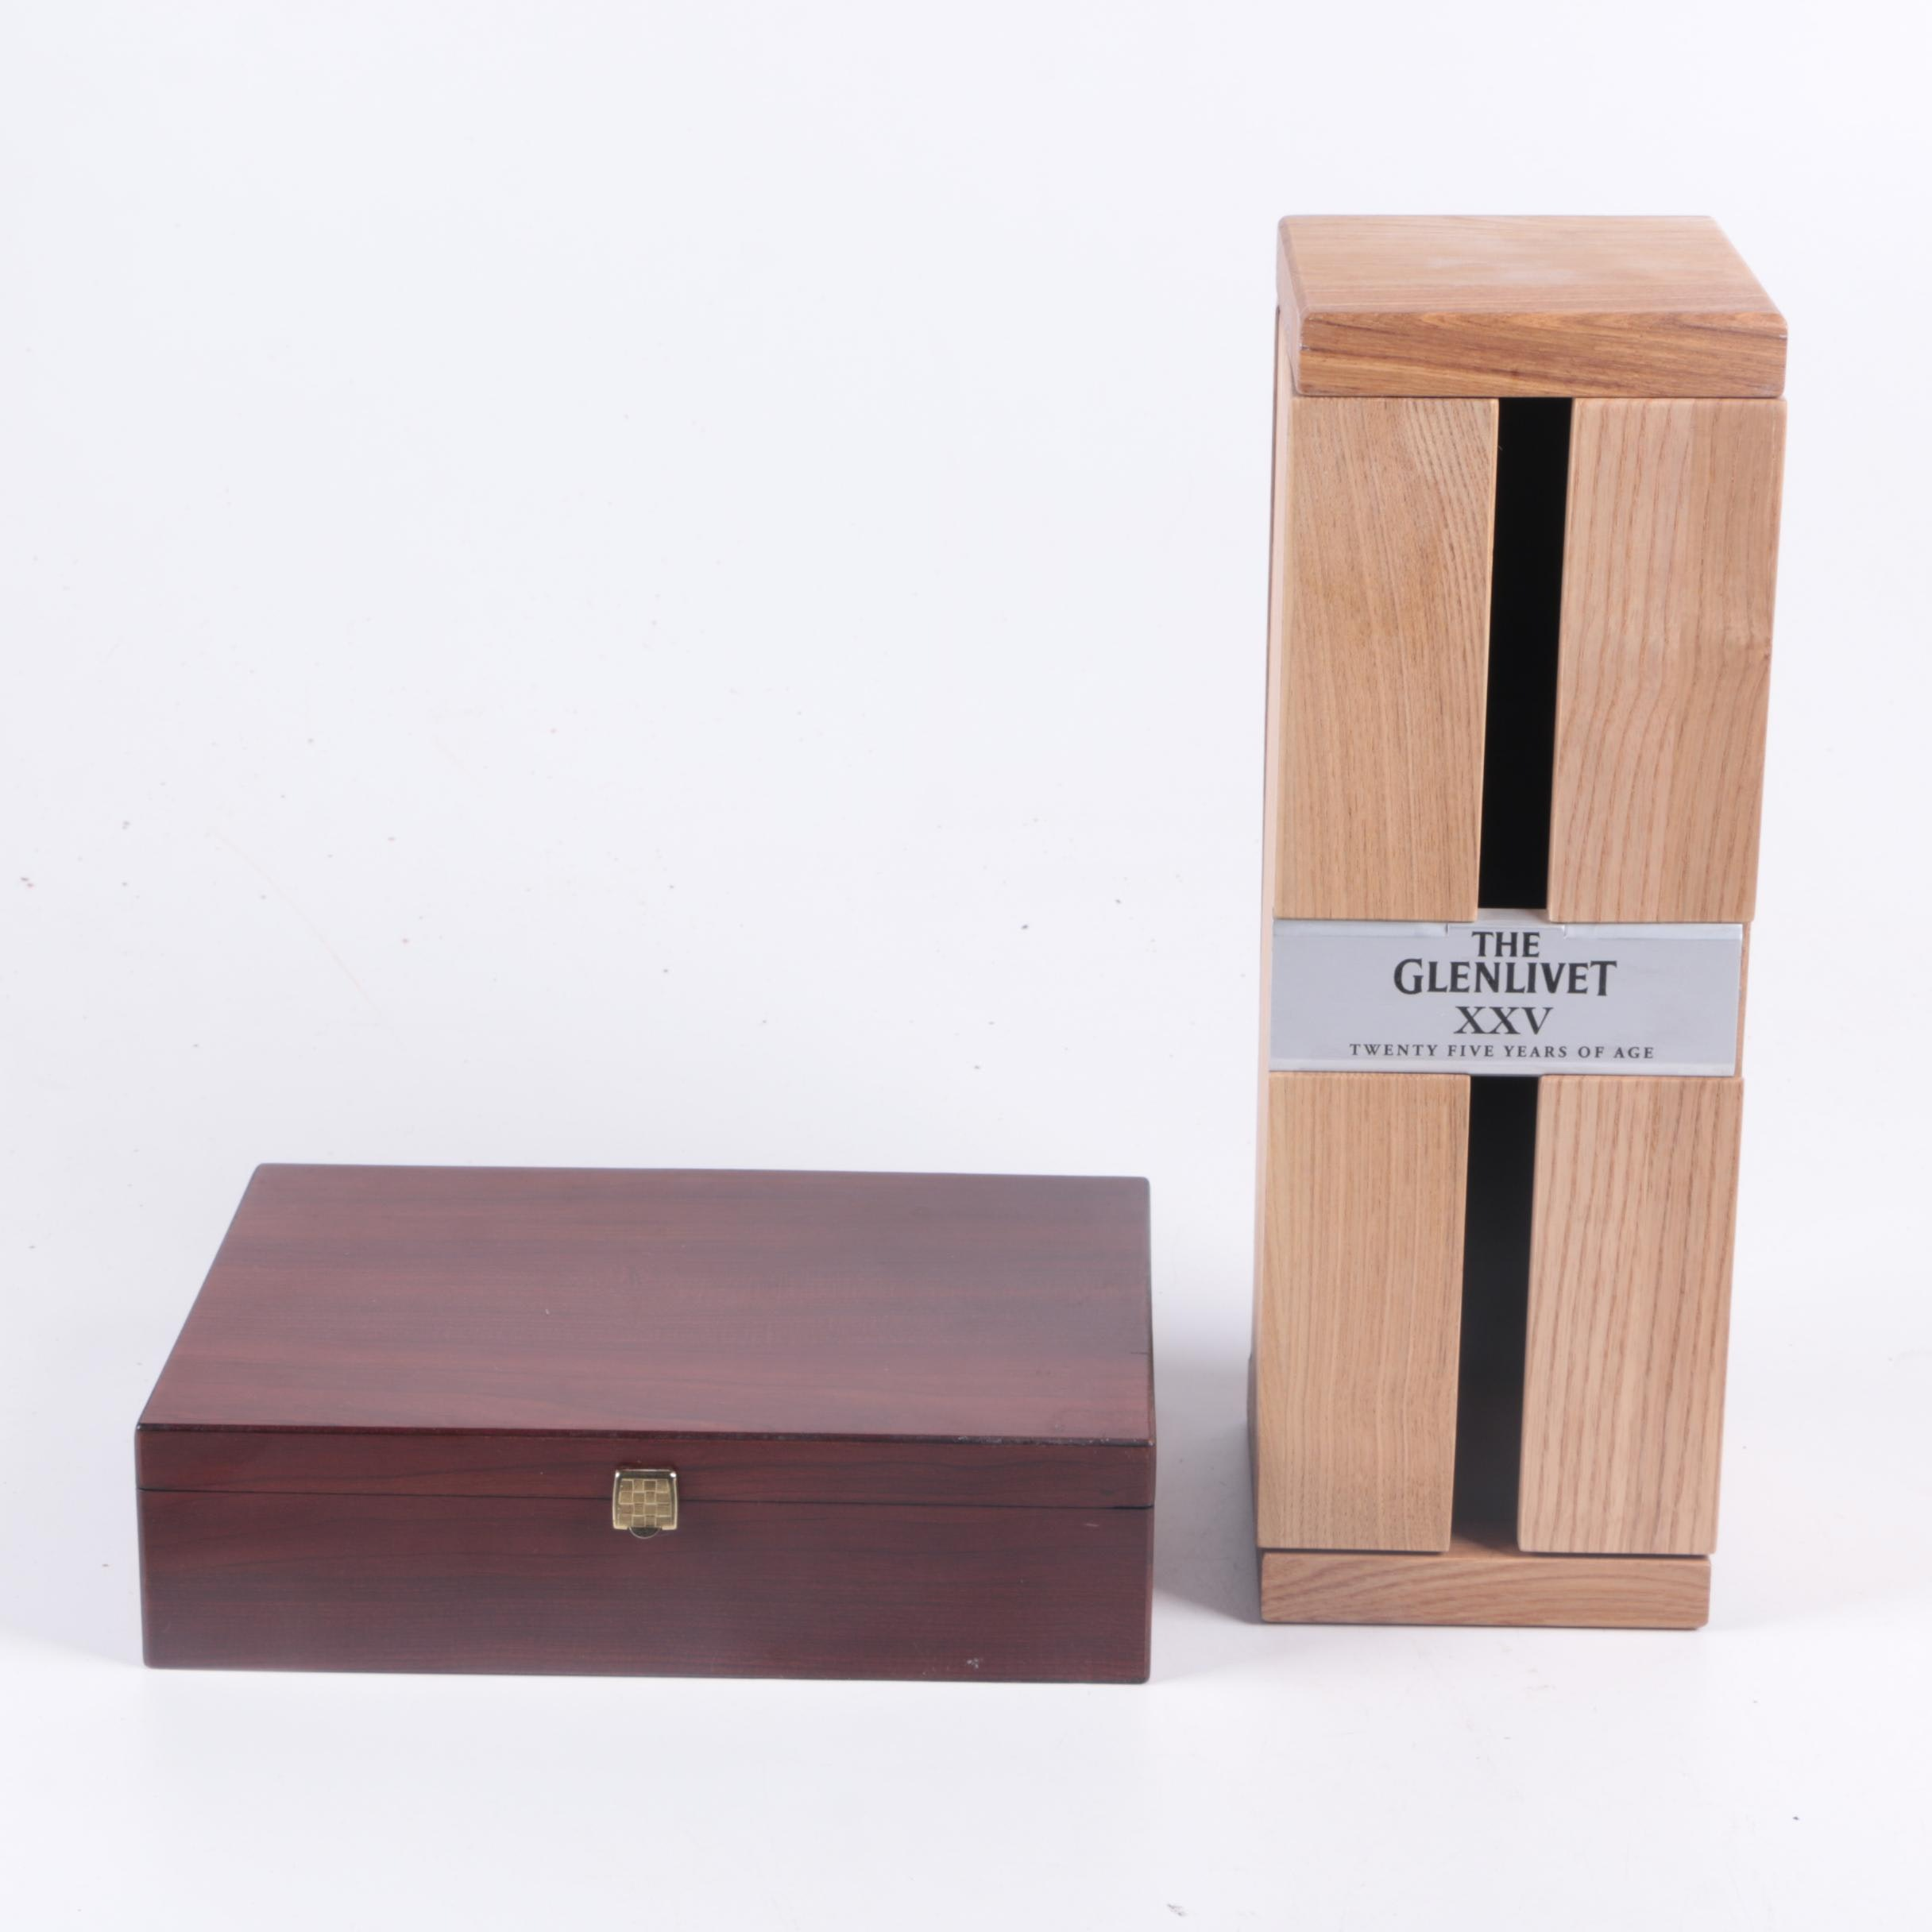 Signed The Glenlivet XXV Whiskey Wooden Box and Bentley's Tea Box